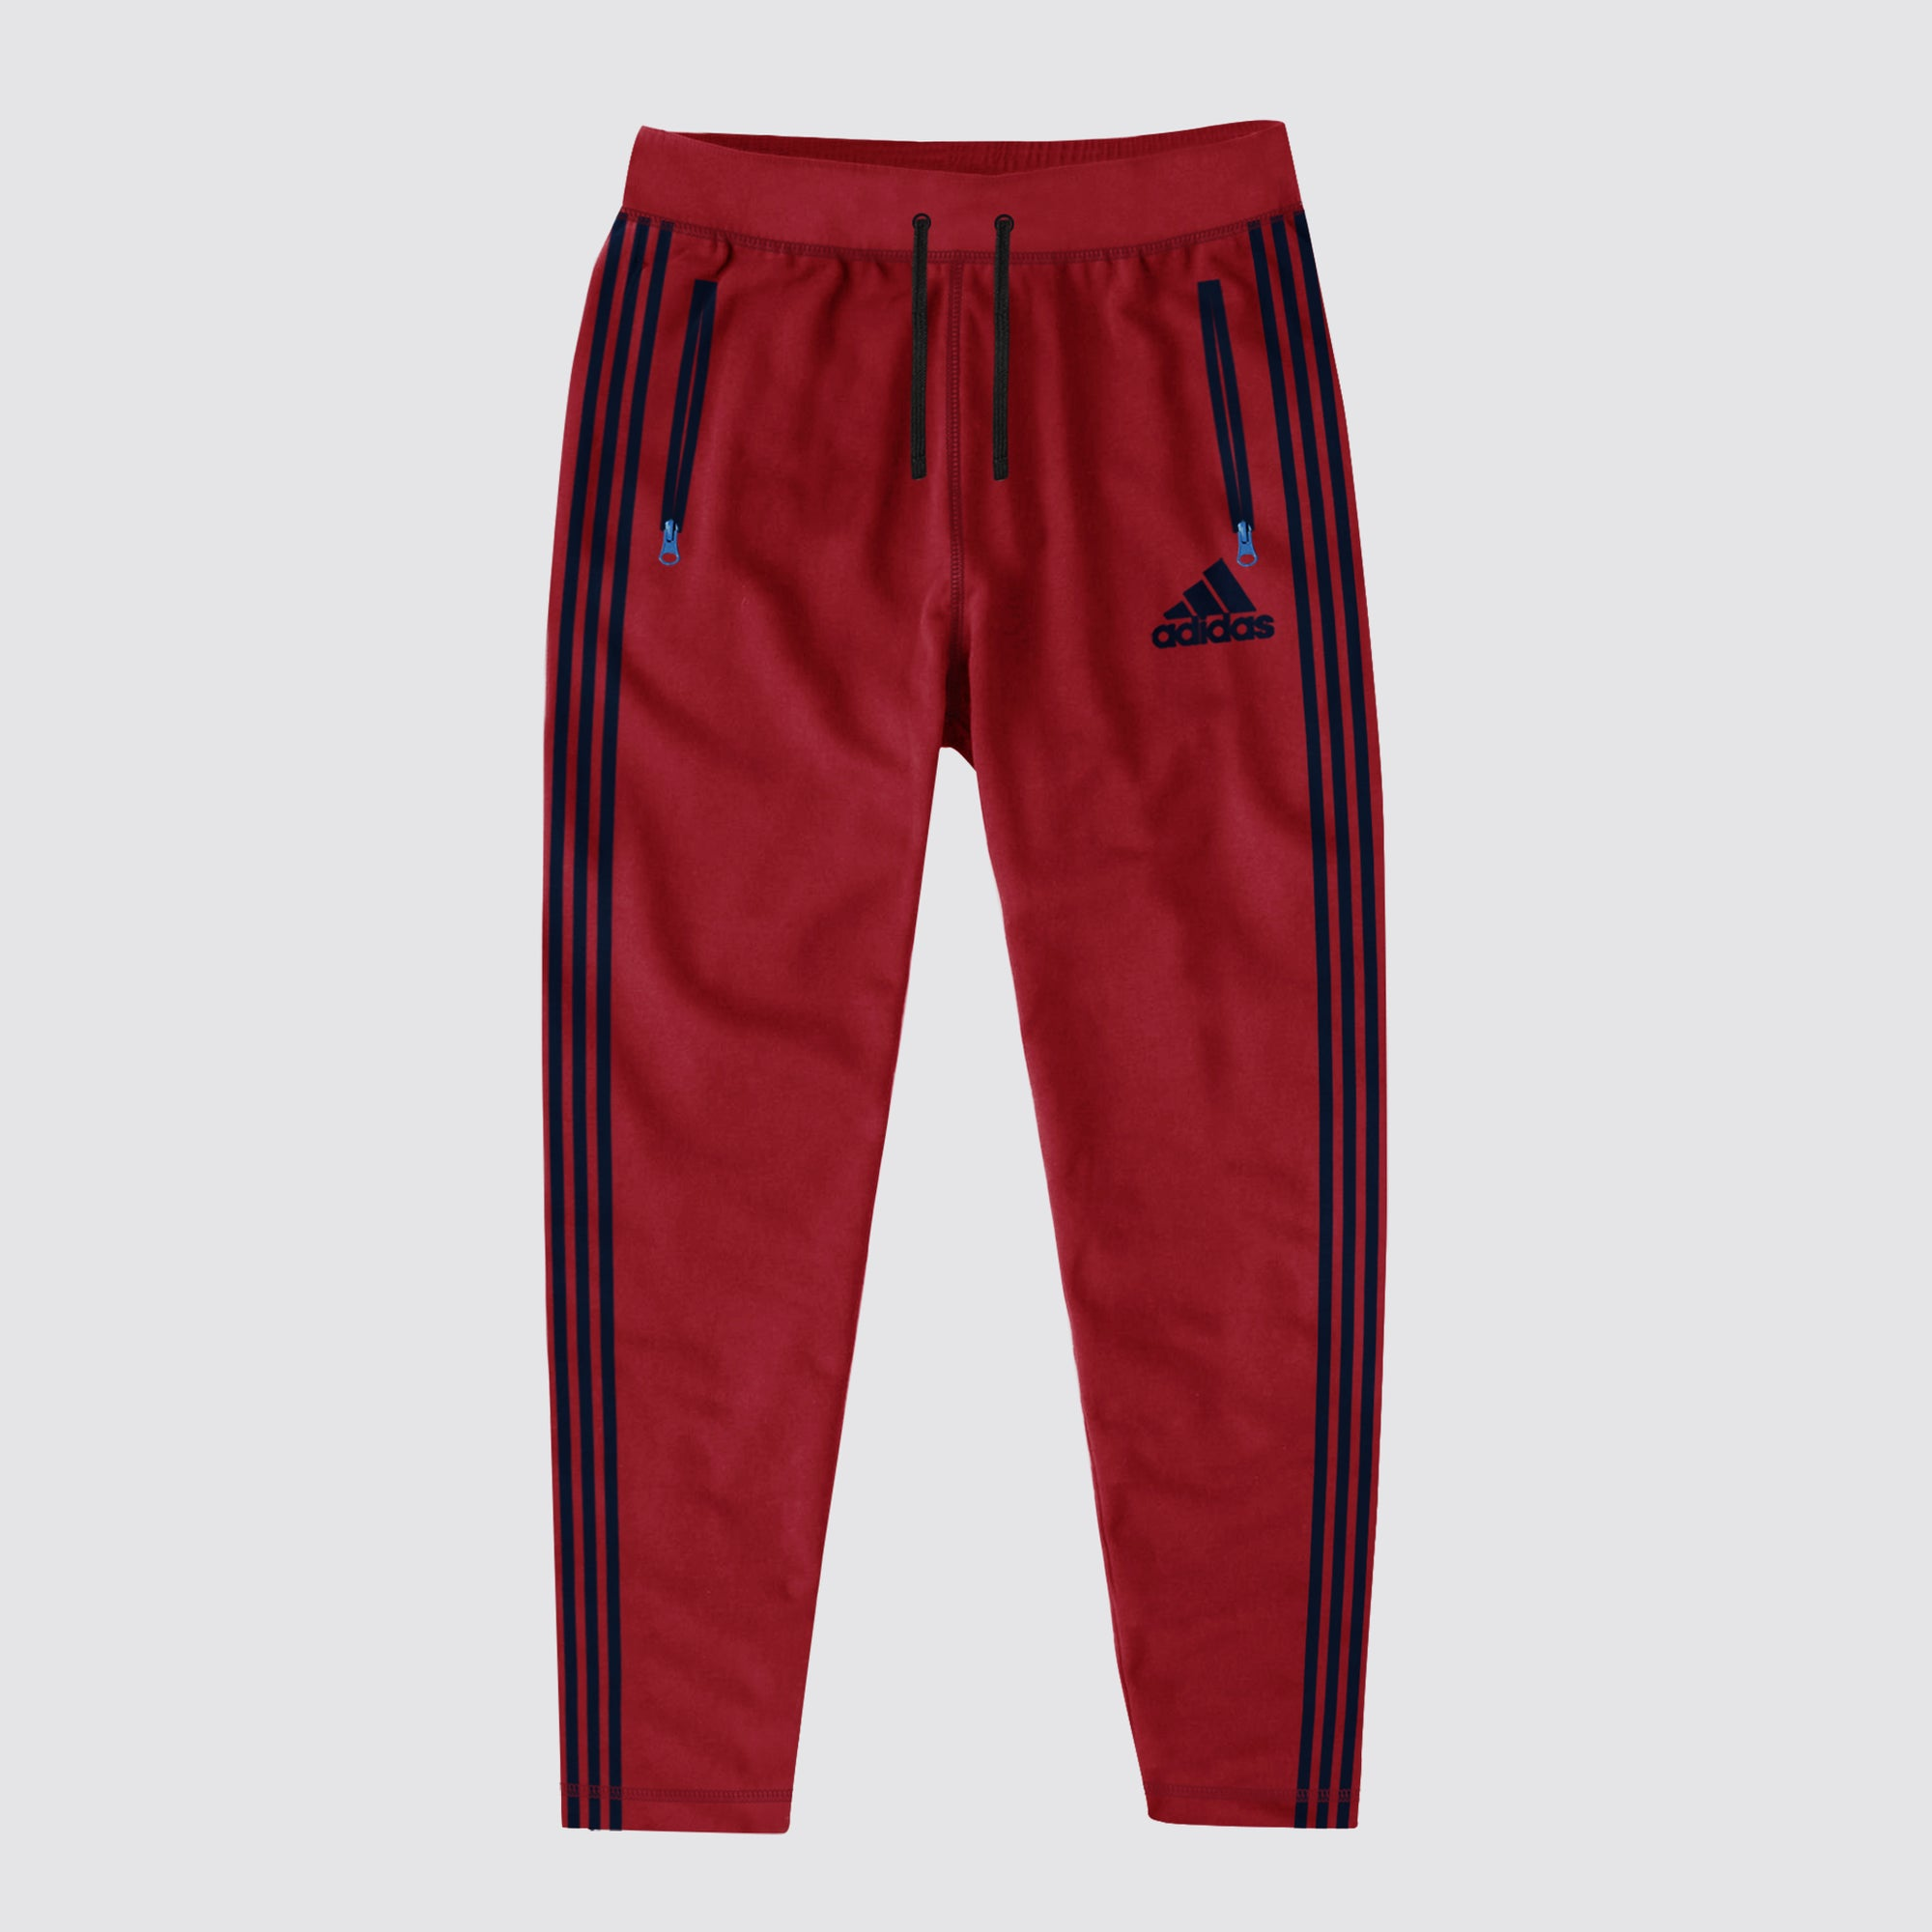 Adidas Single Jersey Regular Fit Trouser For Men-Red & Navy Stripe-BE8661